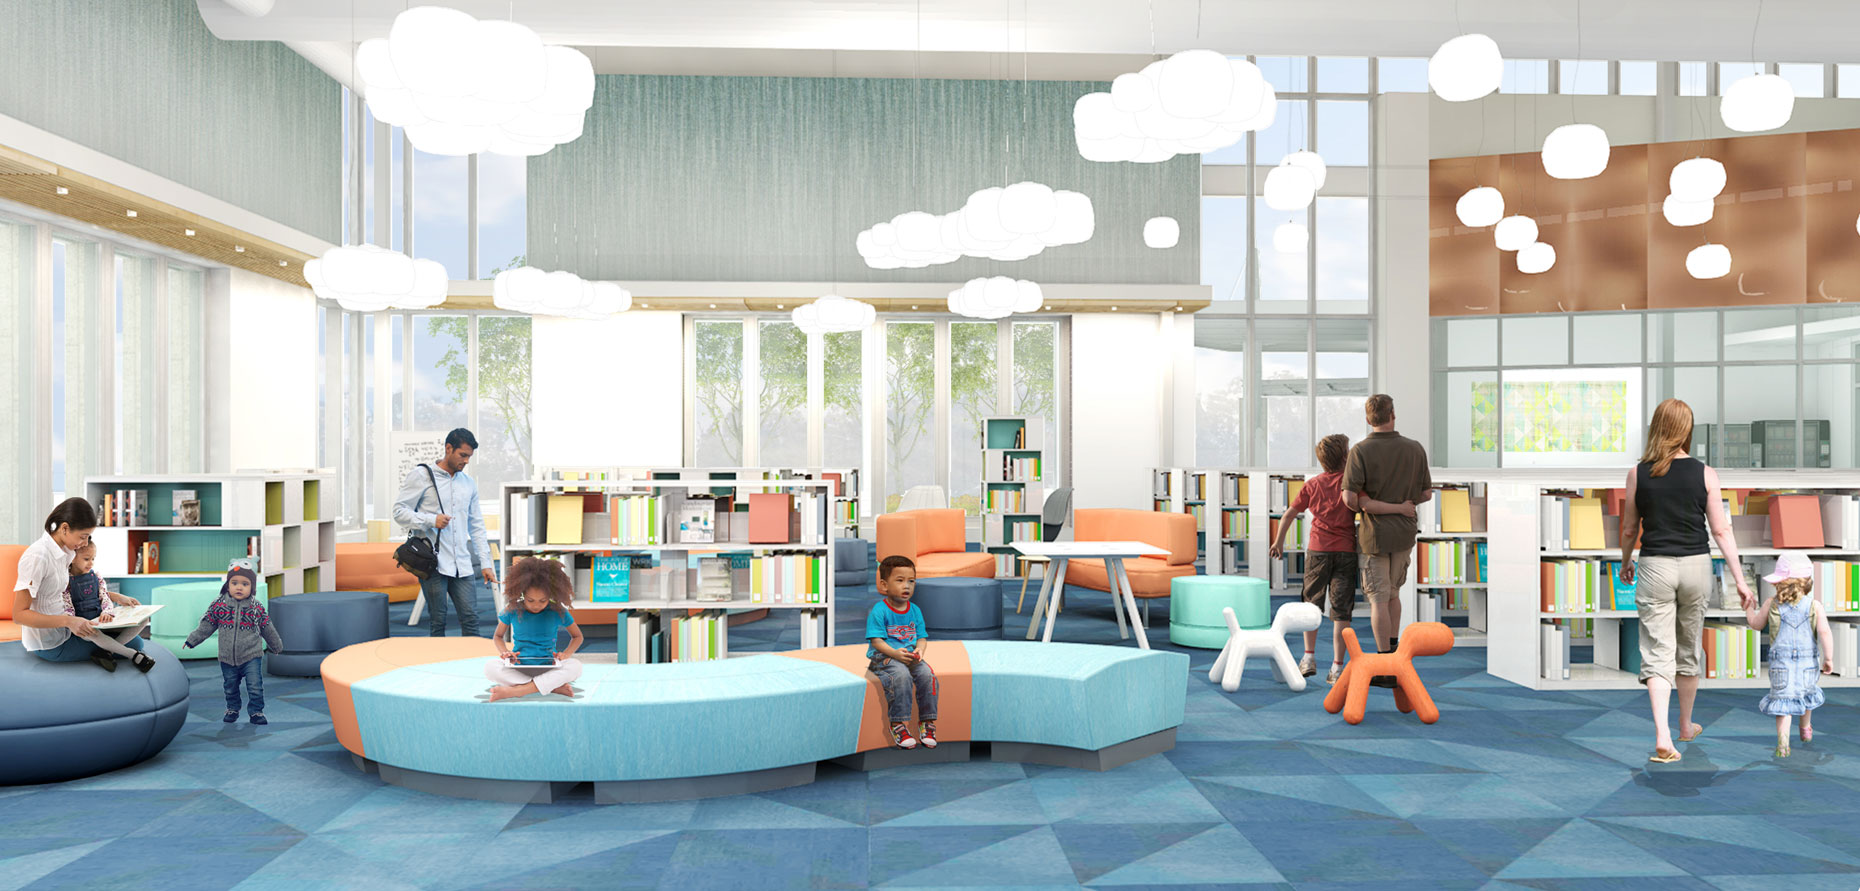 Annapolis-Library_LCA_DD_RENDERING-06